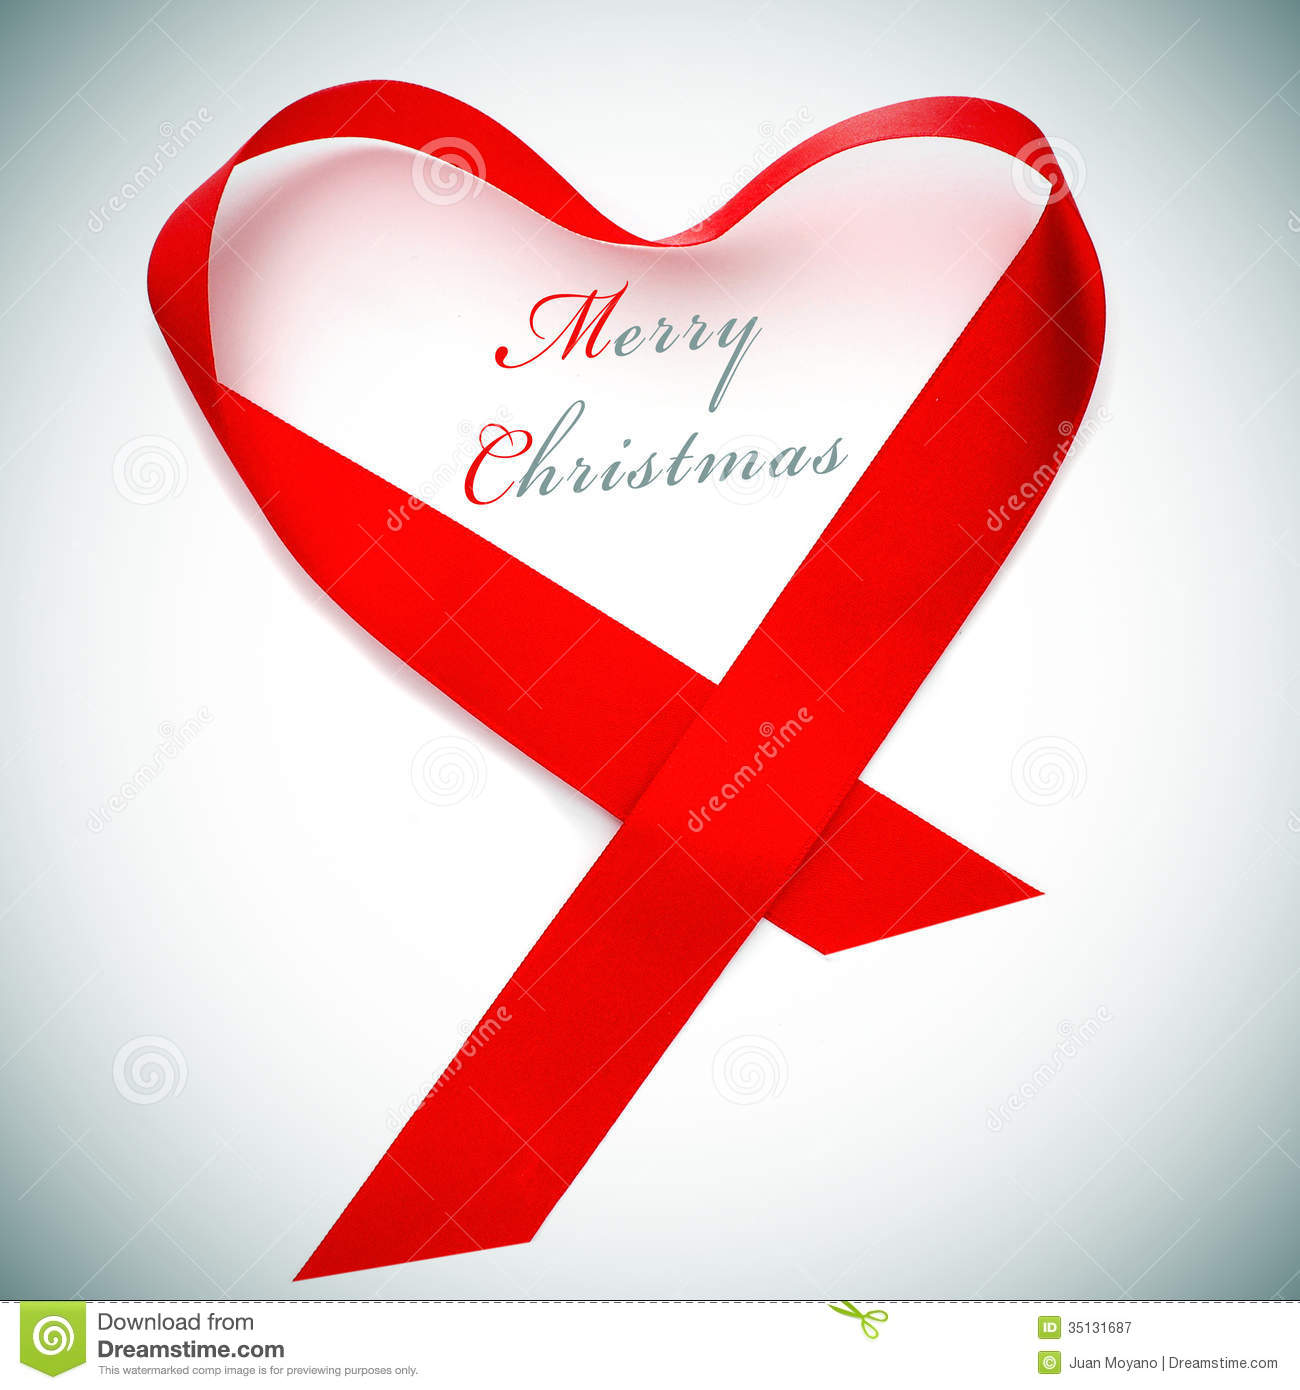 Merry christmas stock image of message heart